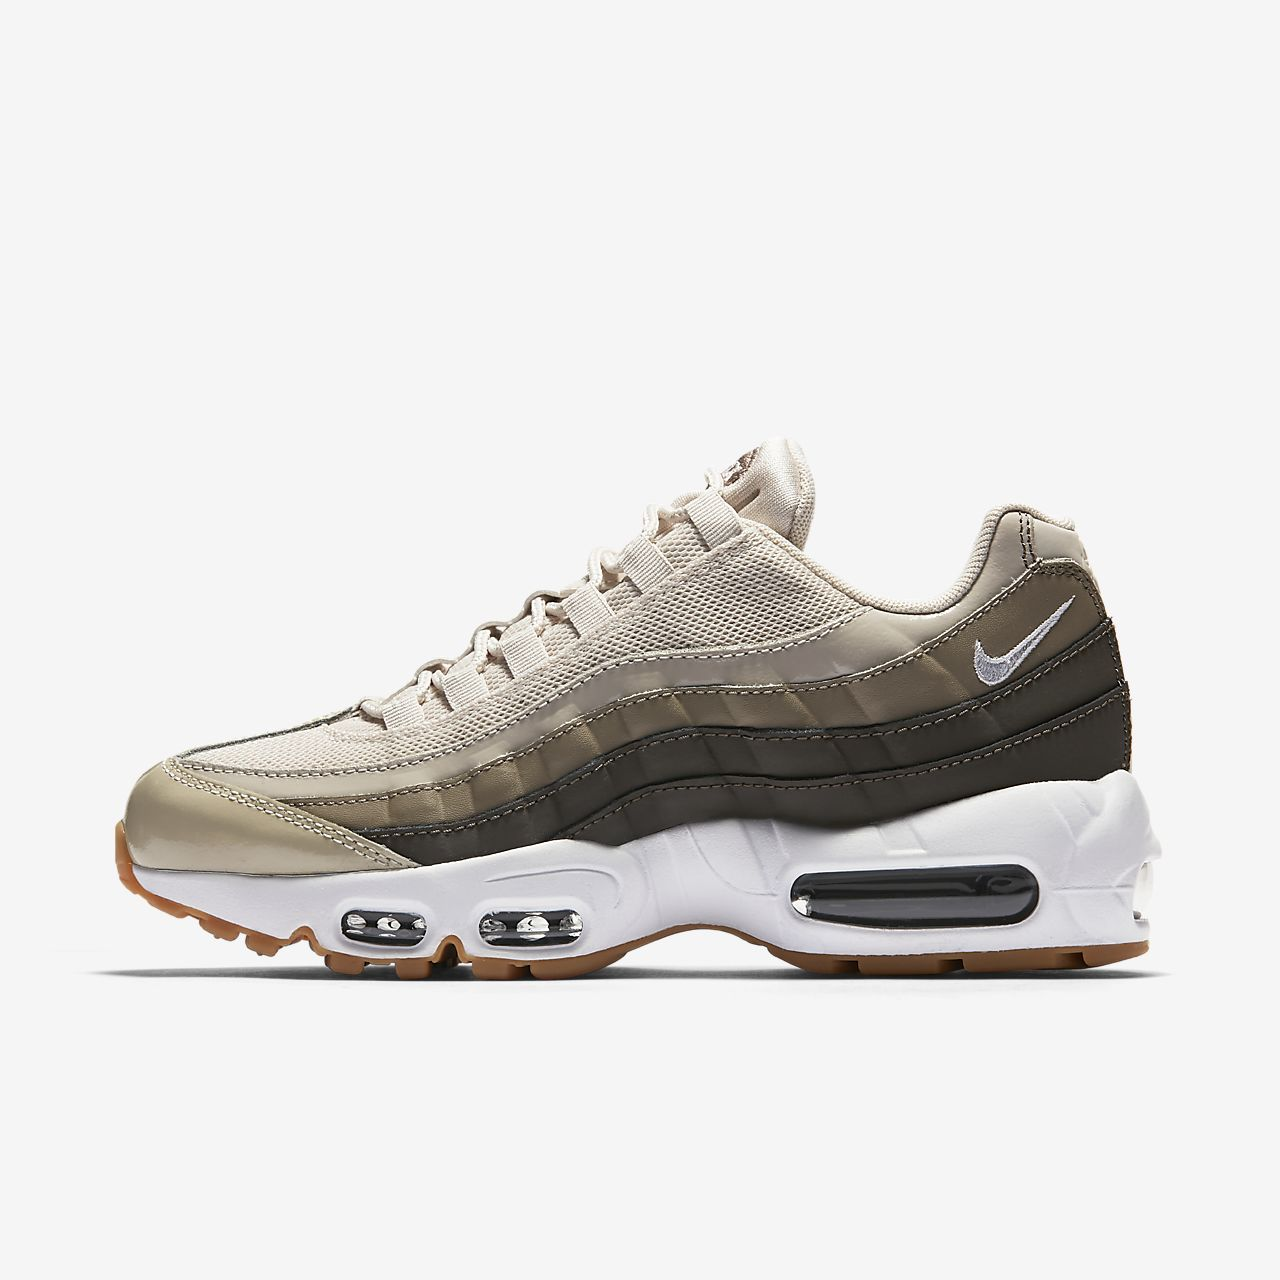 newest 04a64 dc2f4 ... coupon code for nike air max 95 og womens shoe 4eebb efc86